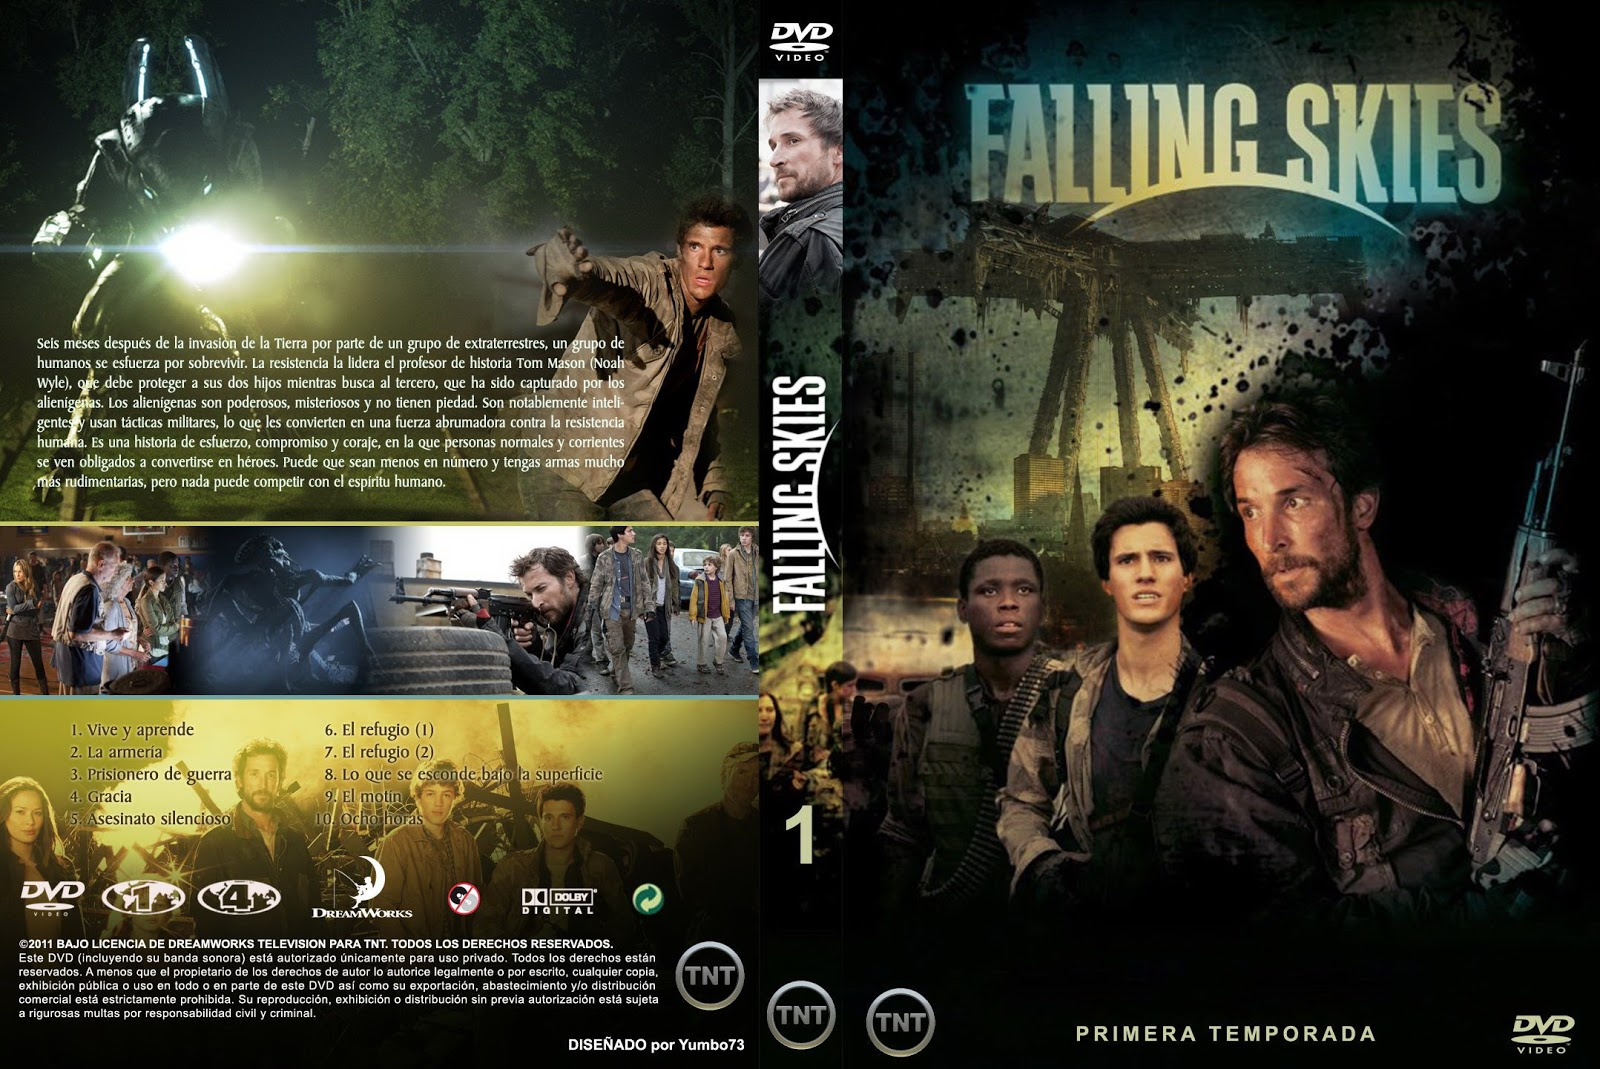 DVD - PS2 - SERIES - PROGRAMAS: Serie - Falling Skies Season 1 ( 3 ...